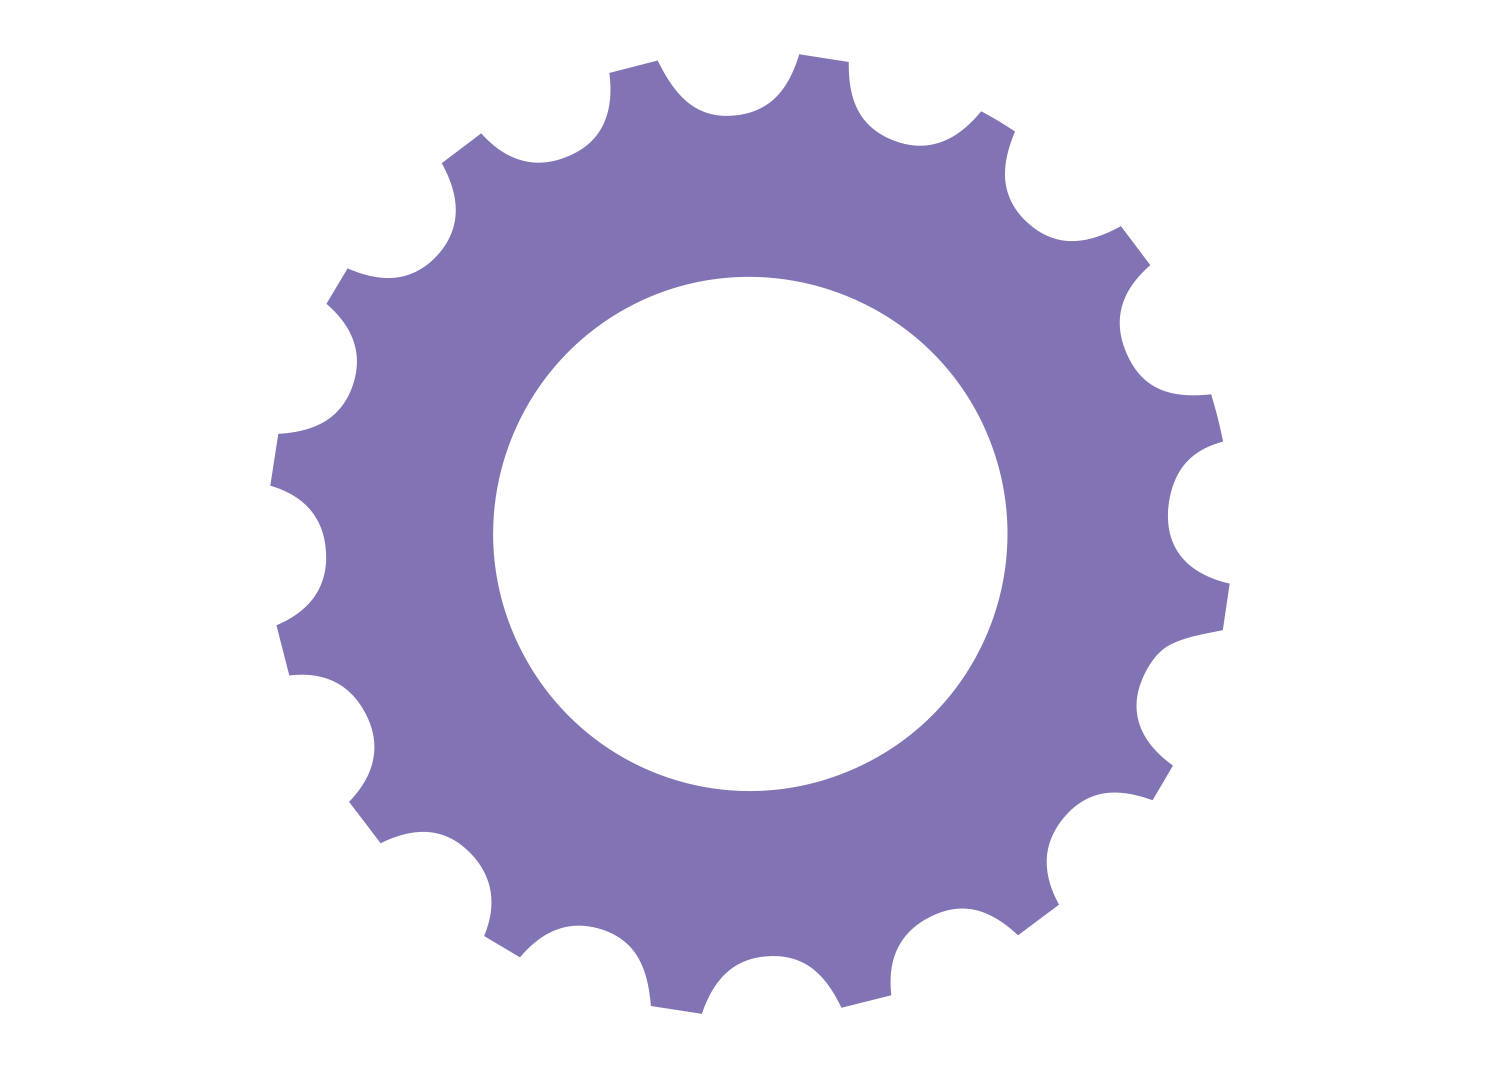 Car gears clipart image royalty free library Health system operational excellence | Grant Thornton image royalty free library